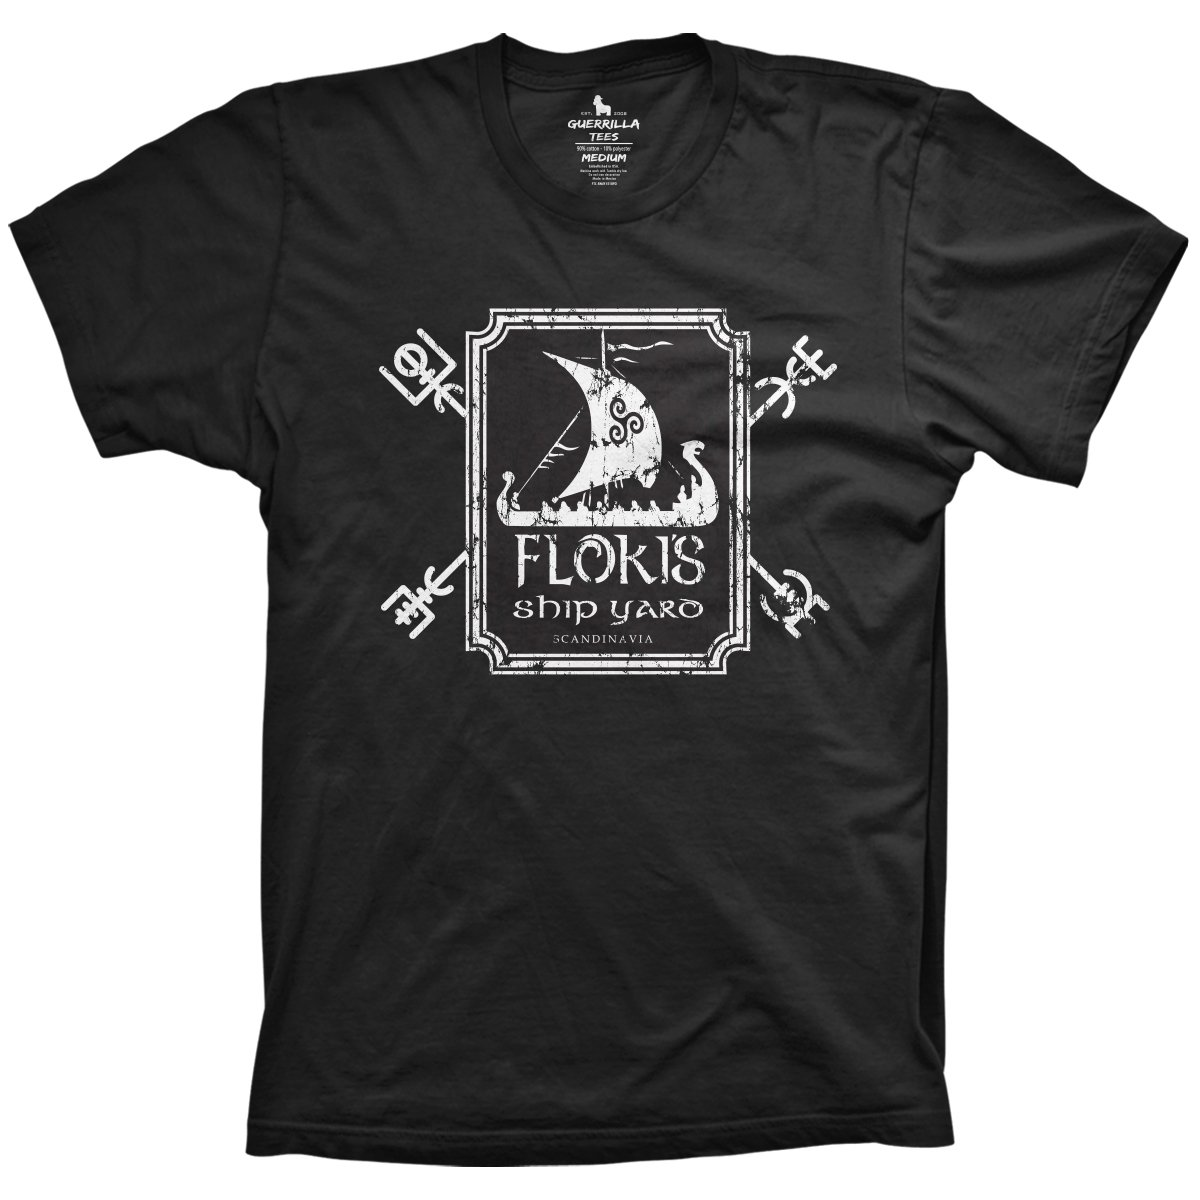 d4acba0e4 Flokis Ship Yard T-Shirt | Shop Vikings TV Show Shirts Online